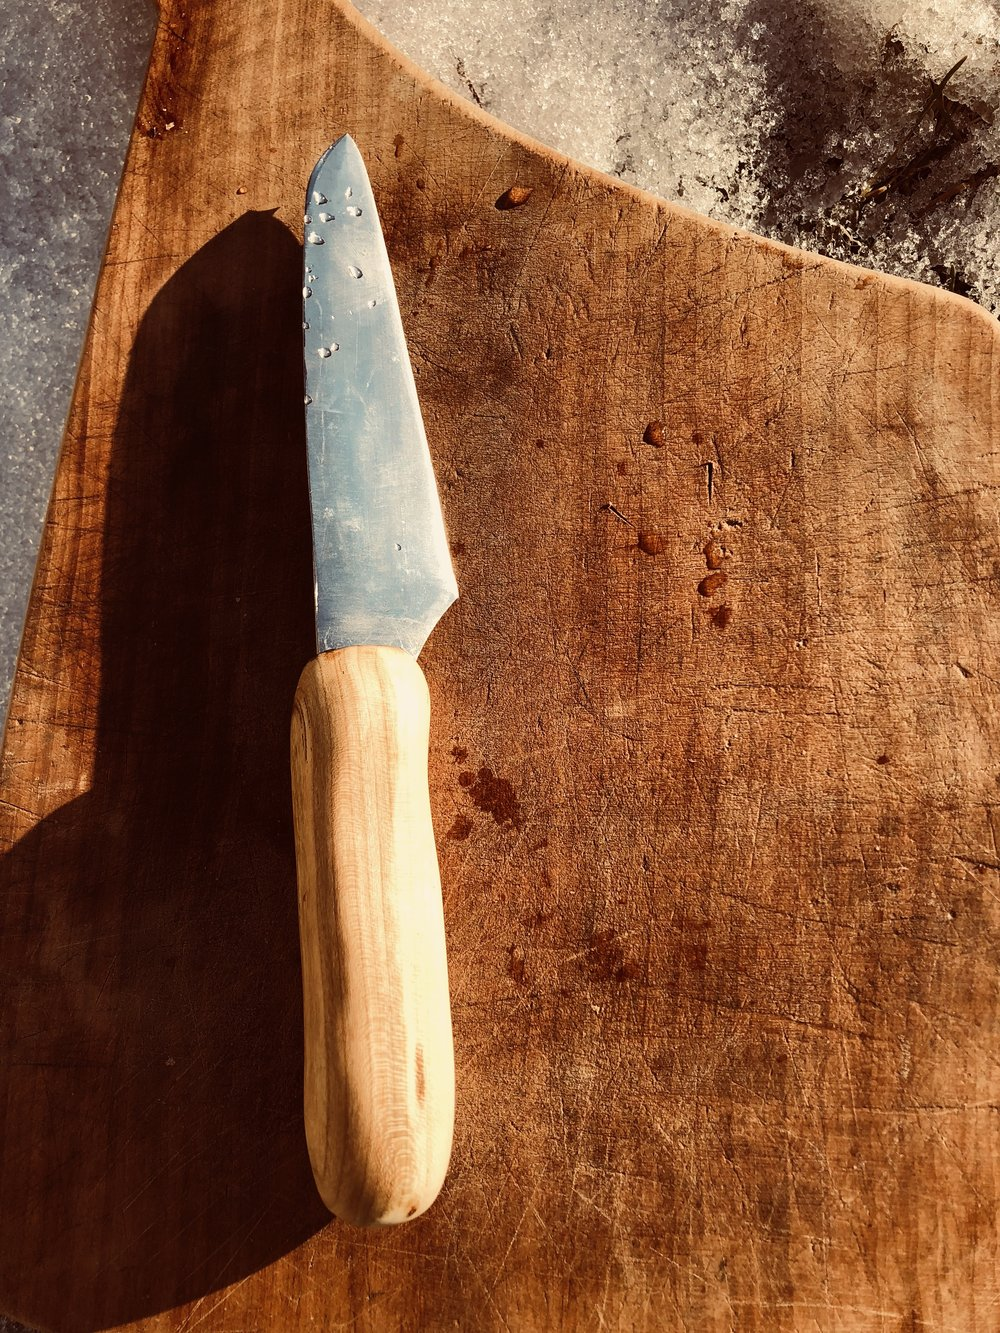 "4"" Paring knife - Cherry wood handle, high carbon steel."